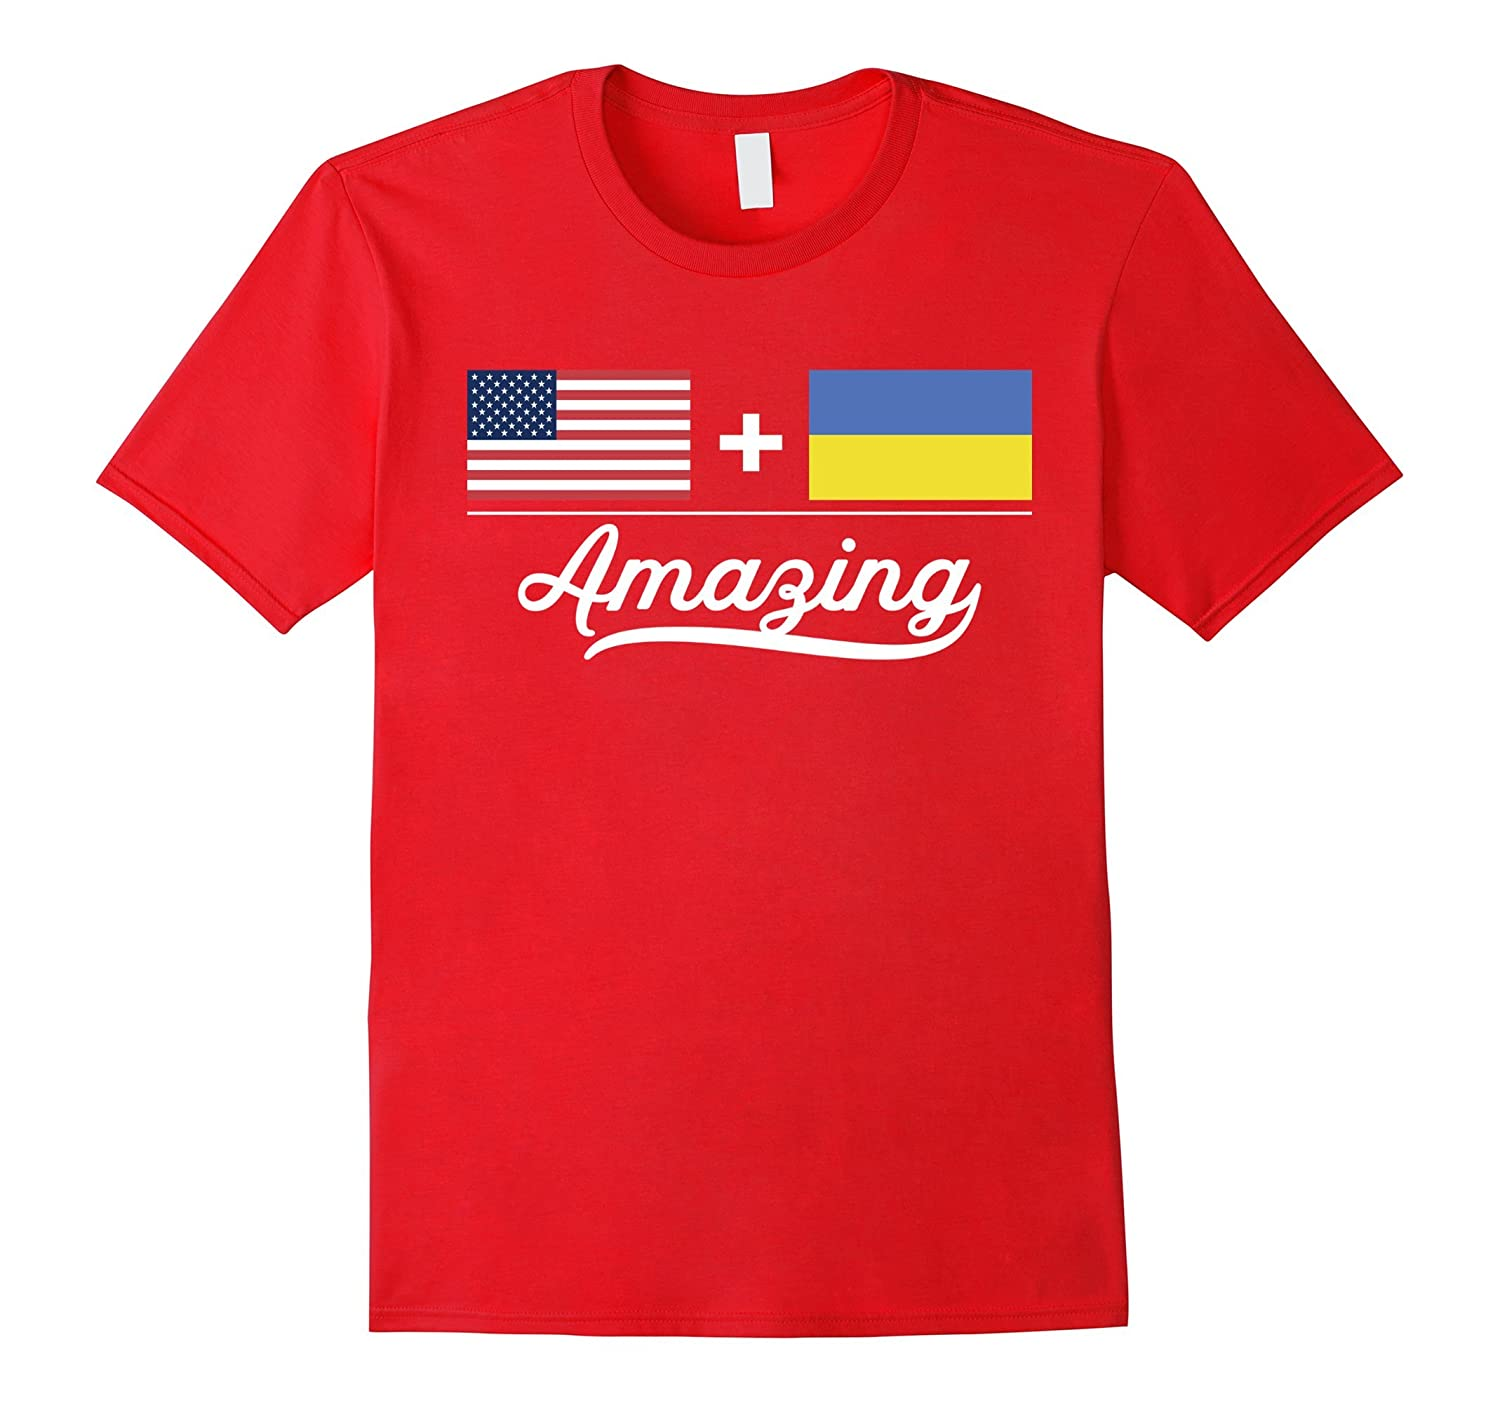 American + Ukrainian = Amazing Flag T-Shirt USA and Ukraine-Art